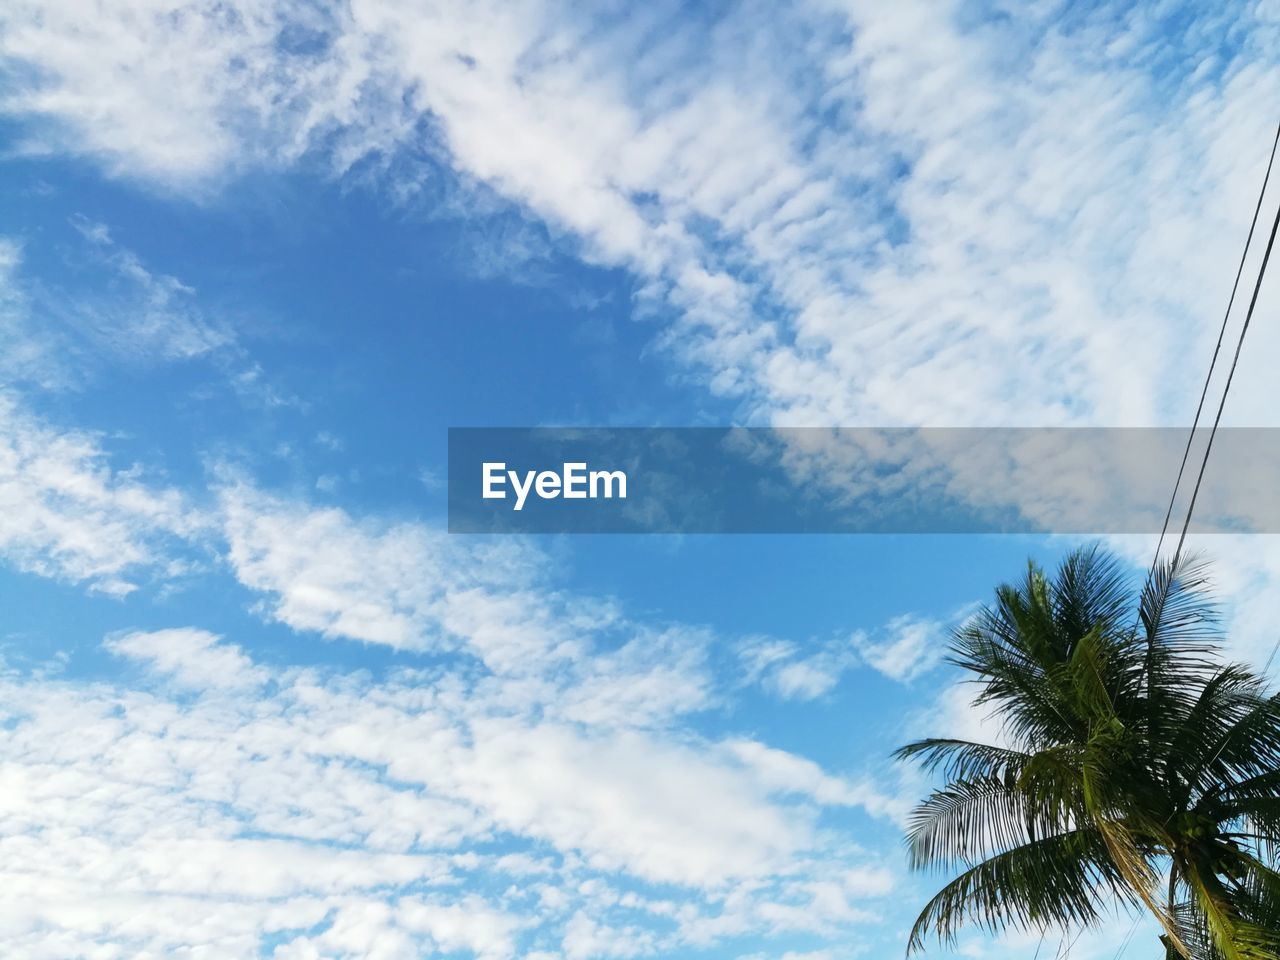 cloud - sky, sky, palm tree, tree, tropical climate, plant, low angle view, beauty in nature, tranquility, no people, day, scenics - nature, nature, growth, blue, tranquil scene, outdoors, idyllic, coconut palm tree, palm leaf, tropical tree